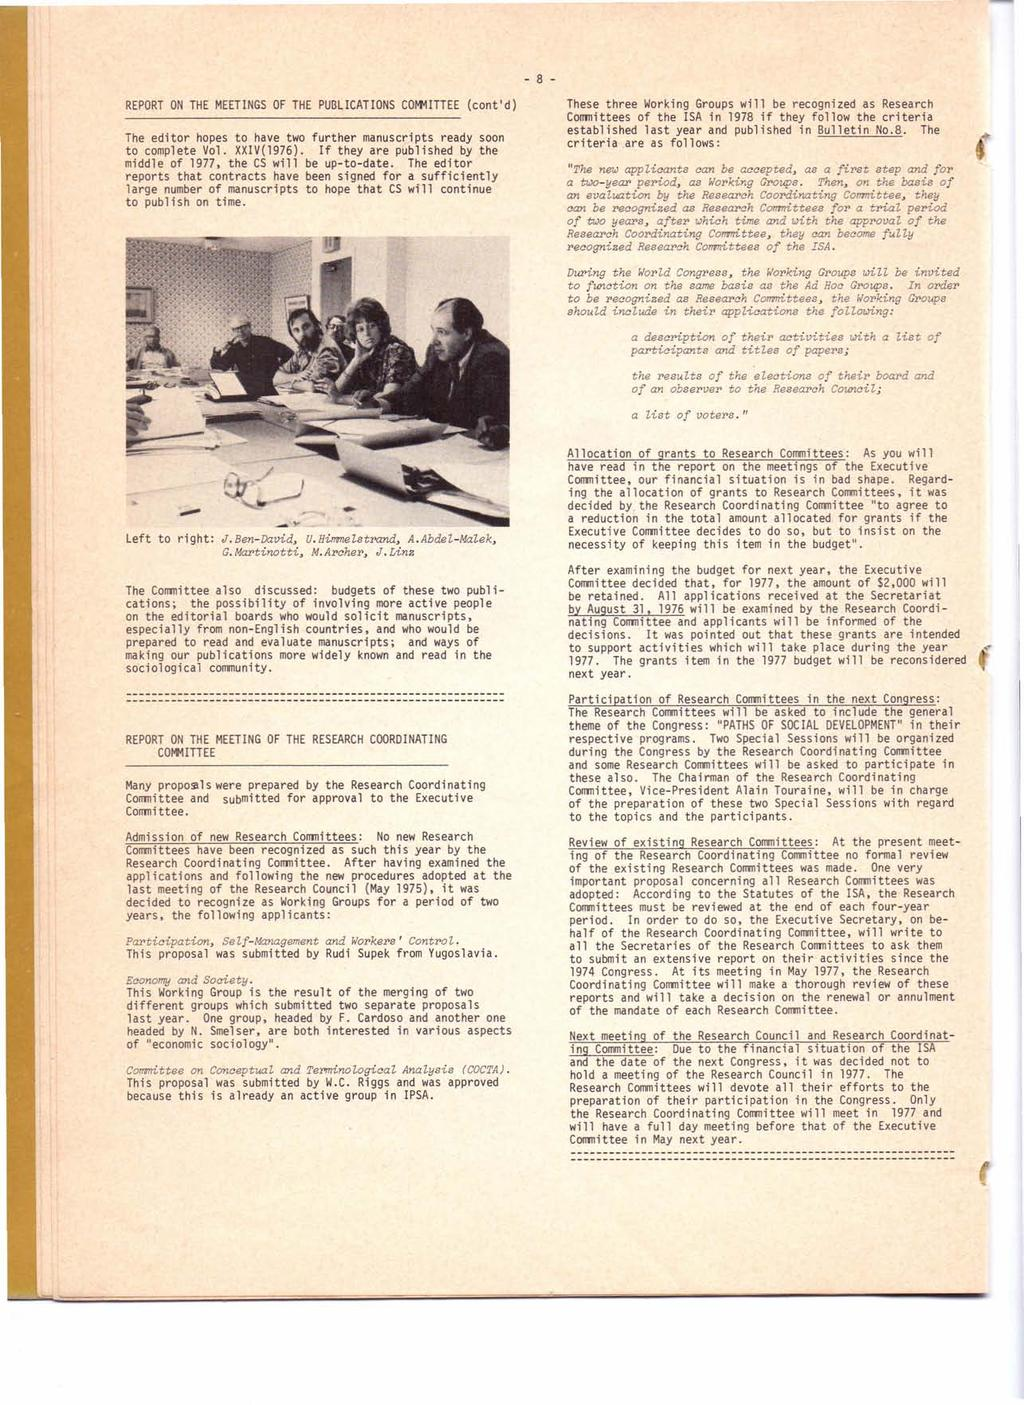 - 8 - REPORT ON THE MEETINGS OF THE PUBLICATIONS COMMITTEE (cont'd) The editor hopes to have two further manuscripts ready soon to complete Vol. XXIV(1976).